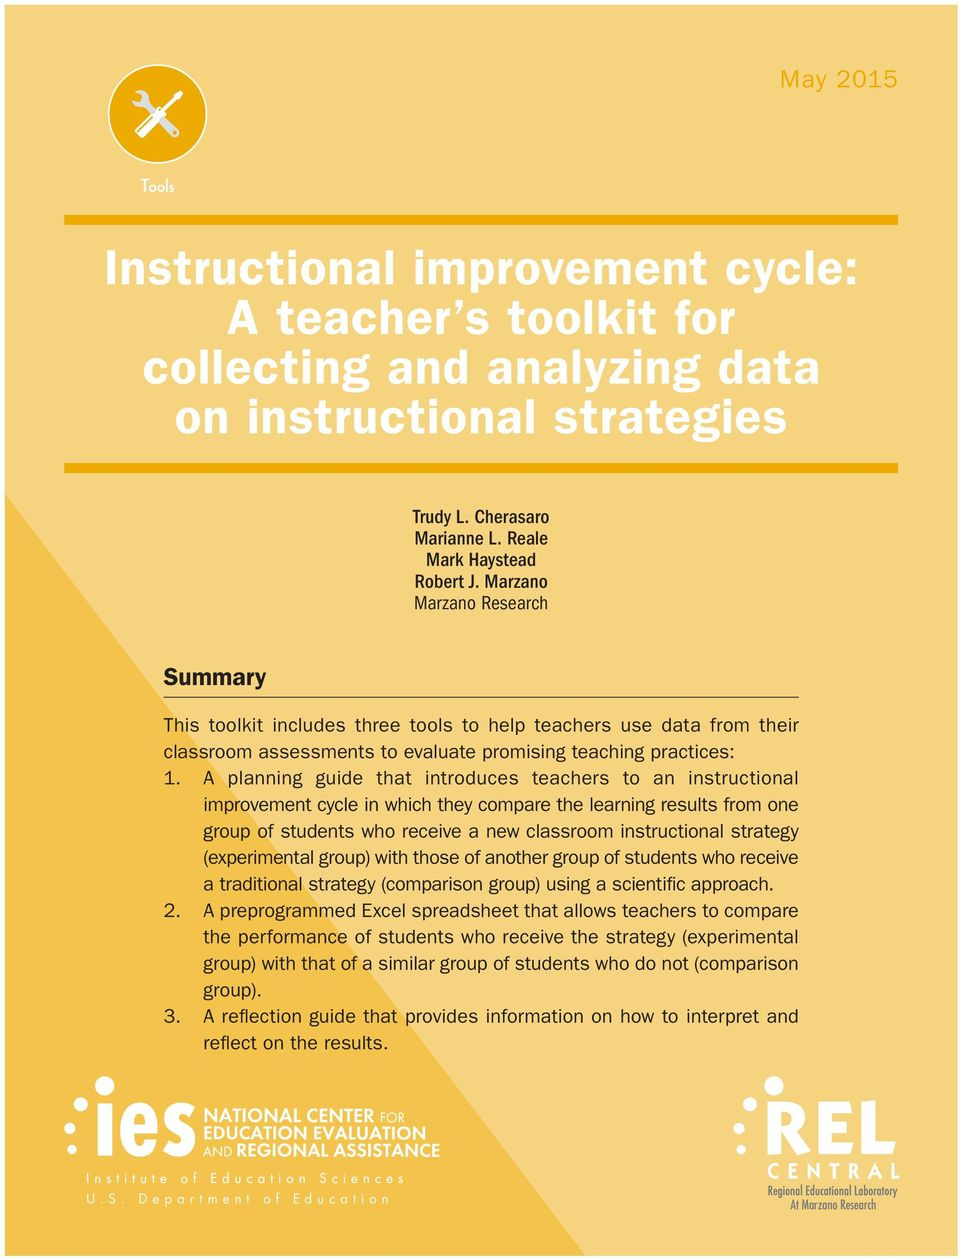 A planning guide that introduces teachers to an instructional improvement cycle in which they compare the learning results from one group of students who receive a new classroom instructional